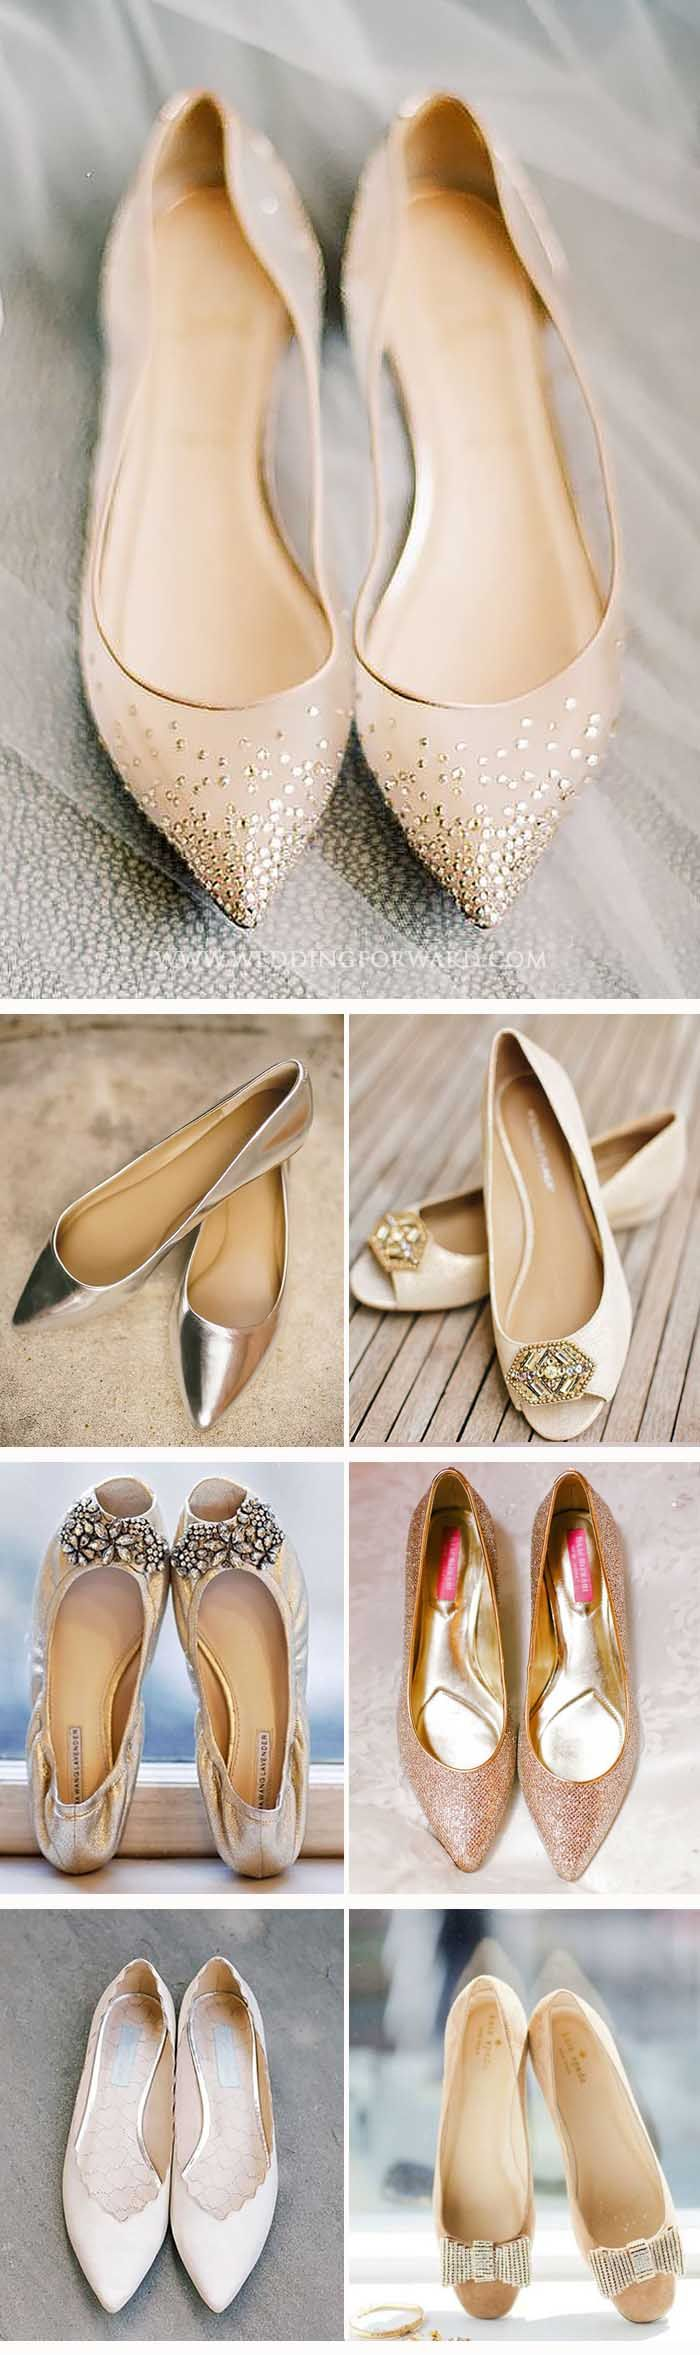 Emejing Comfortable Wedding Flats For Bride Images - Styles & Ideas ...